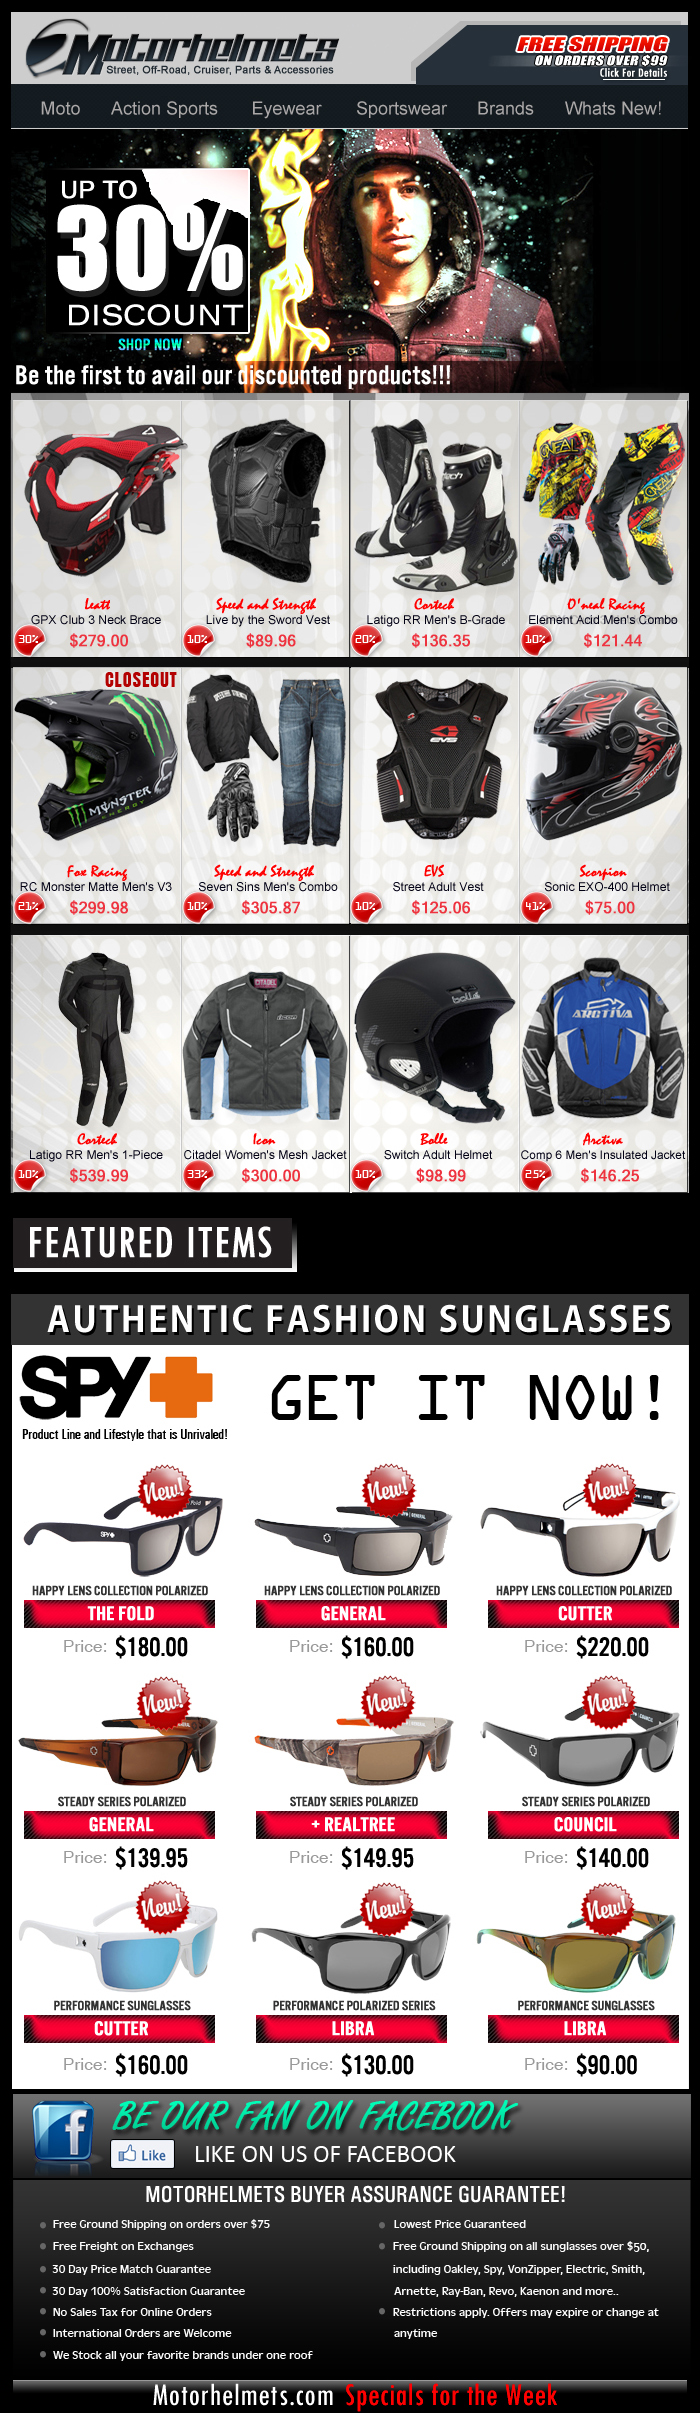 Save up to 30% Off on Gear & Apparel from Fox, Icon, Scorpion and more!!